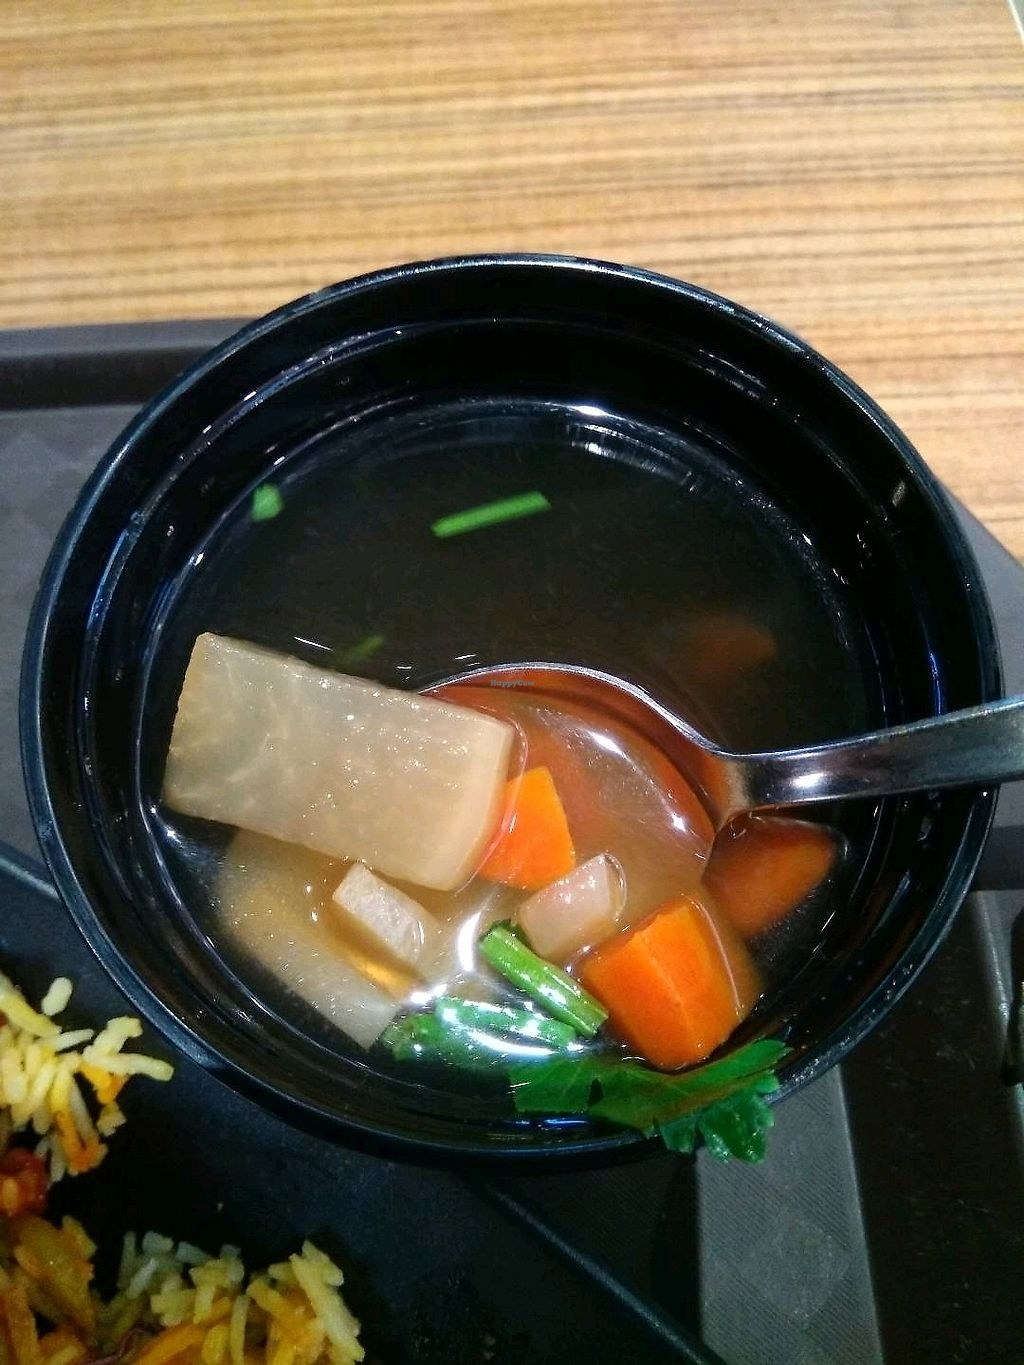 """Photo of AMK Hub - Vegetarian Stall  by <a href=""""/members/profile/AdelOng"""">AdelOng</a> <br/>very sweet soup ~  <br/> April 12, 2018  - <a href='/contact/abuse/image/109727/384265'>Report</a>"""